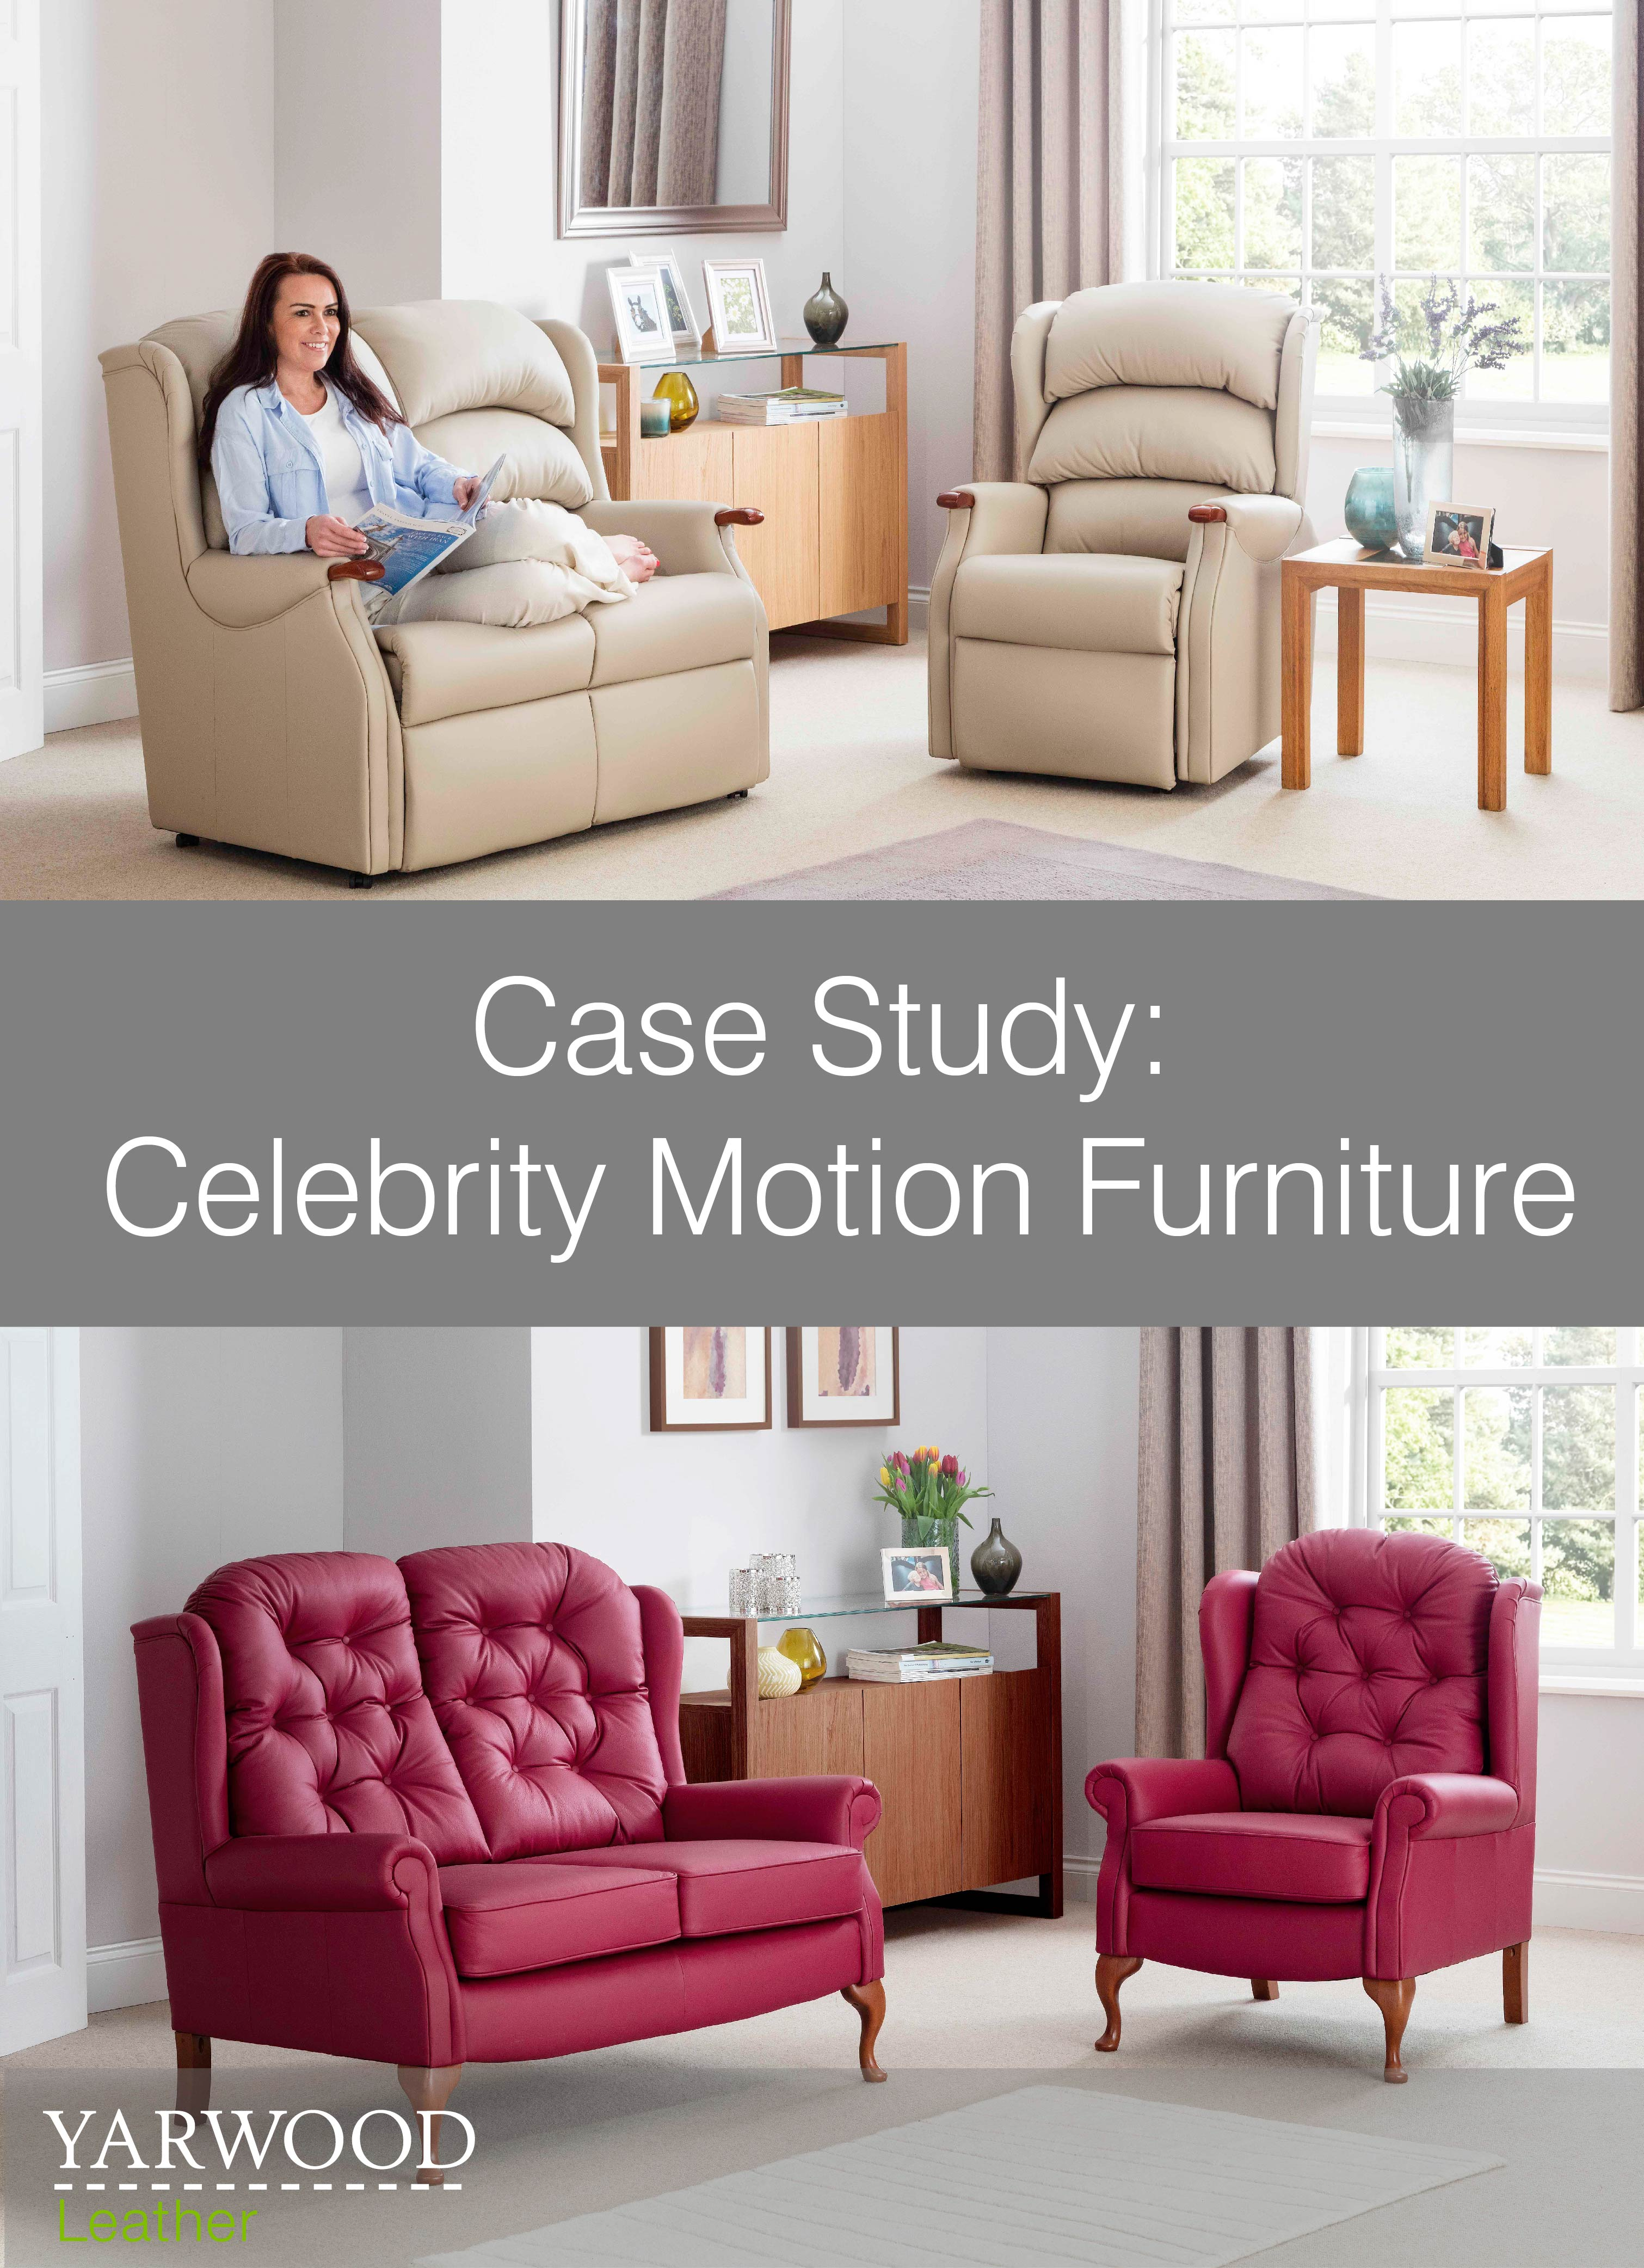 Relaxing home furniture upholstered in neutral and bright leather, read about our work with Celebrity Motion Furniiture